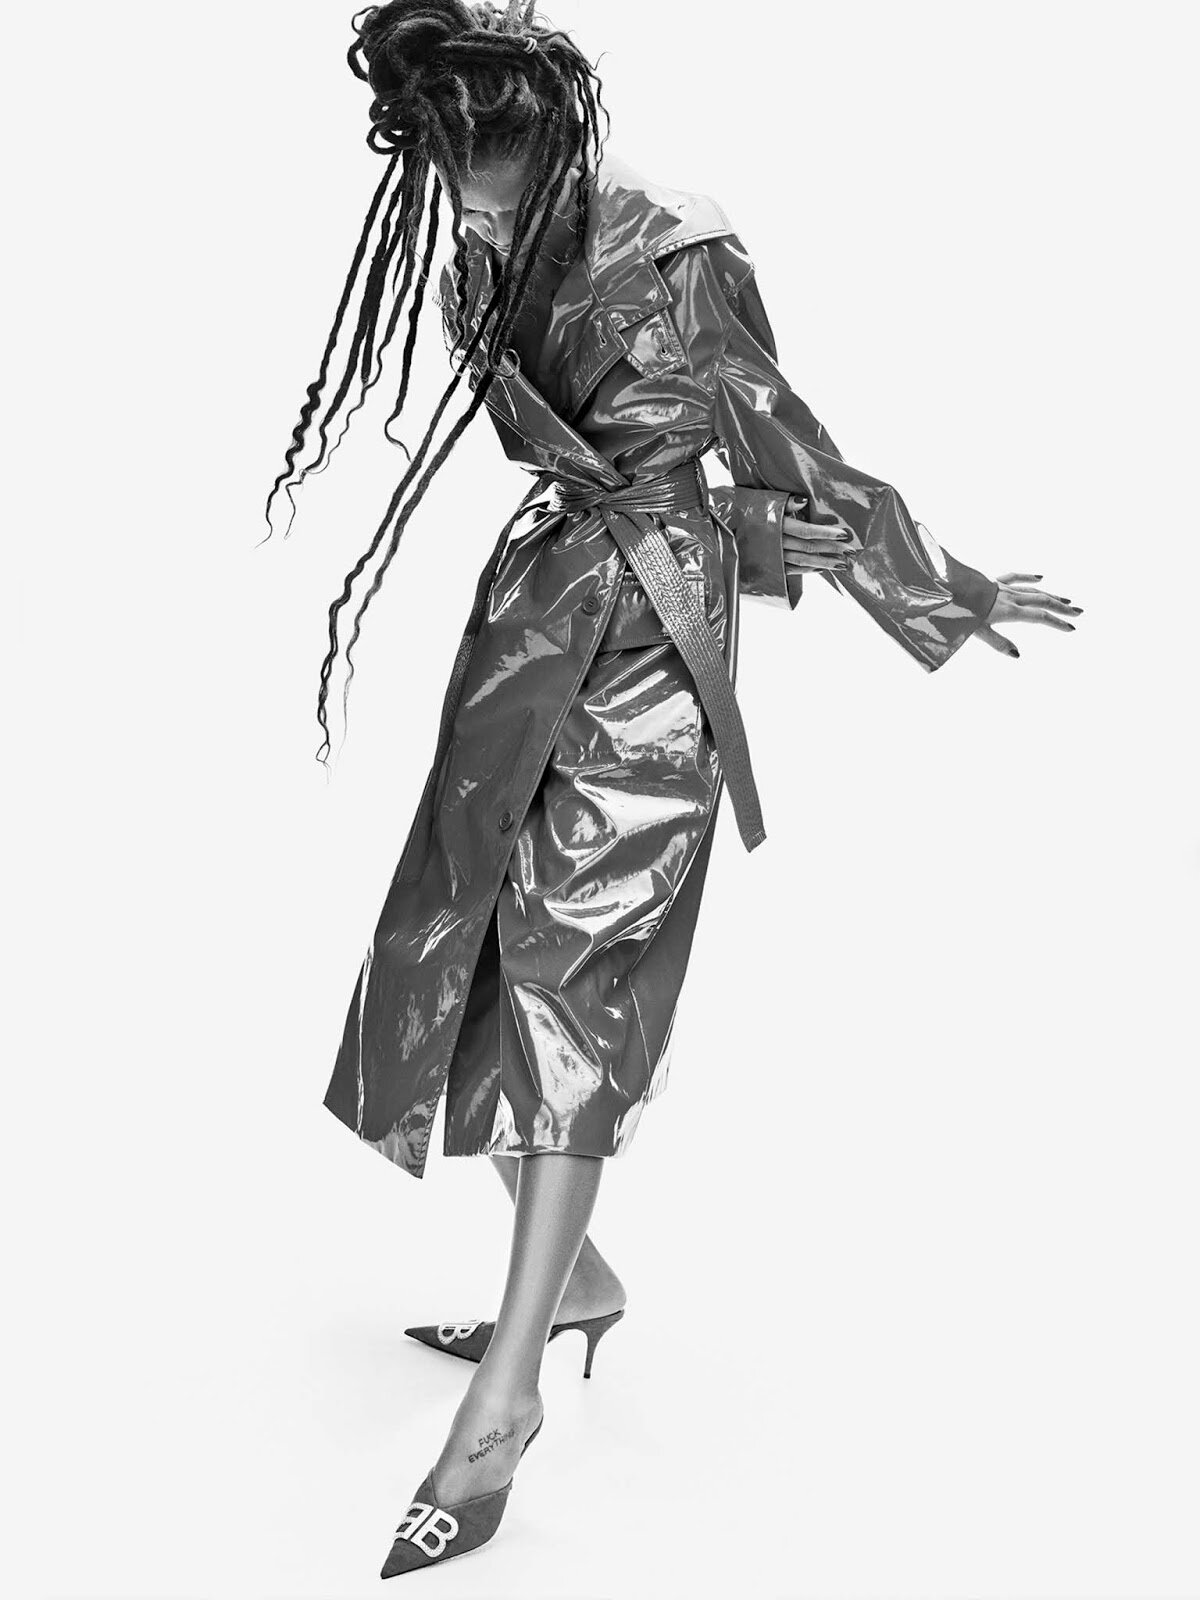 Beloved for avant-garde silhouettes and design innovation, Balenciaga puts its woman at the forefront of fashion. This PVC trench will set you apart for all the right reasons.  Coat, and shoes, both Balenciaga.  Adesuwa Aighewi by Phiip Messmann.